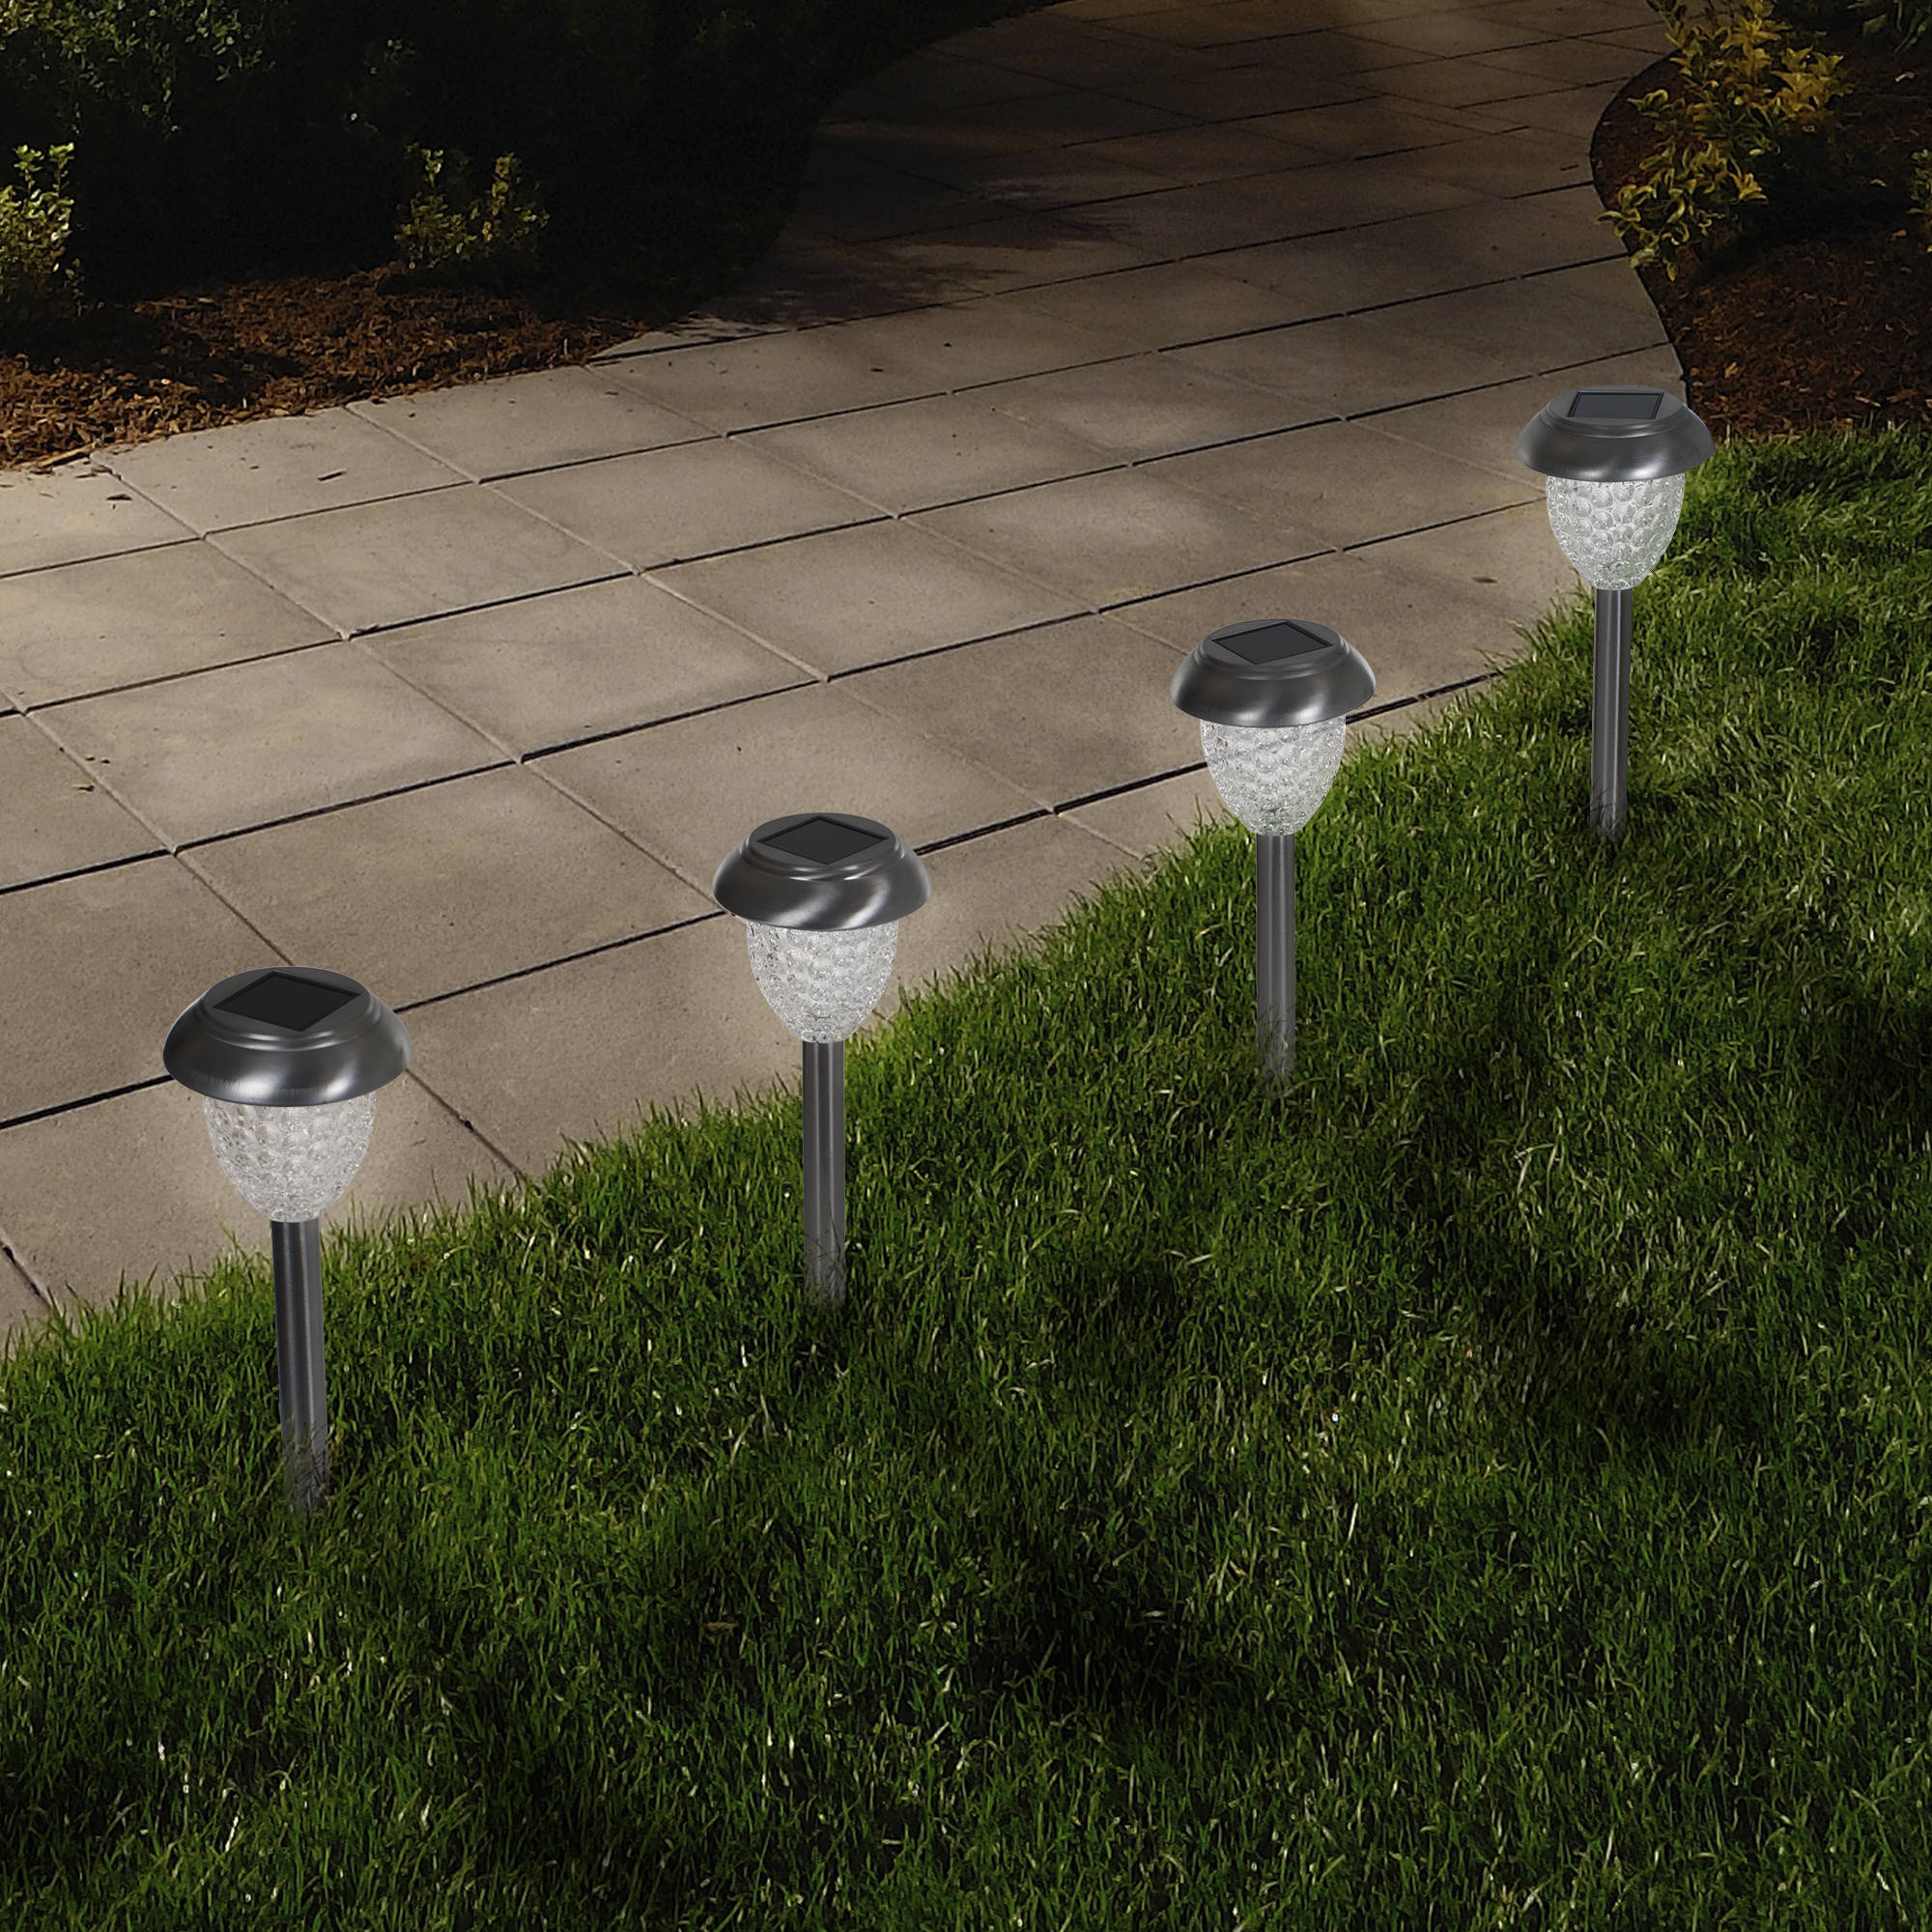 Solar Powered Glass Lights (Set of 6) Low Voltage LED Outdoor Steak Spotlight Fixture for... by Trademark Global LLC